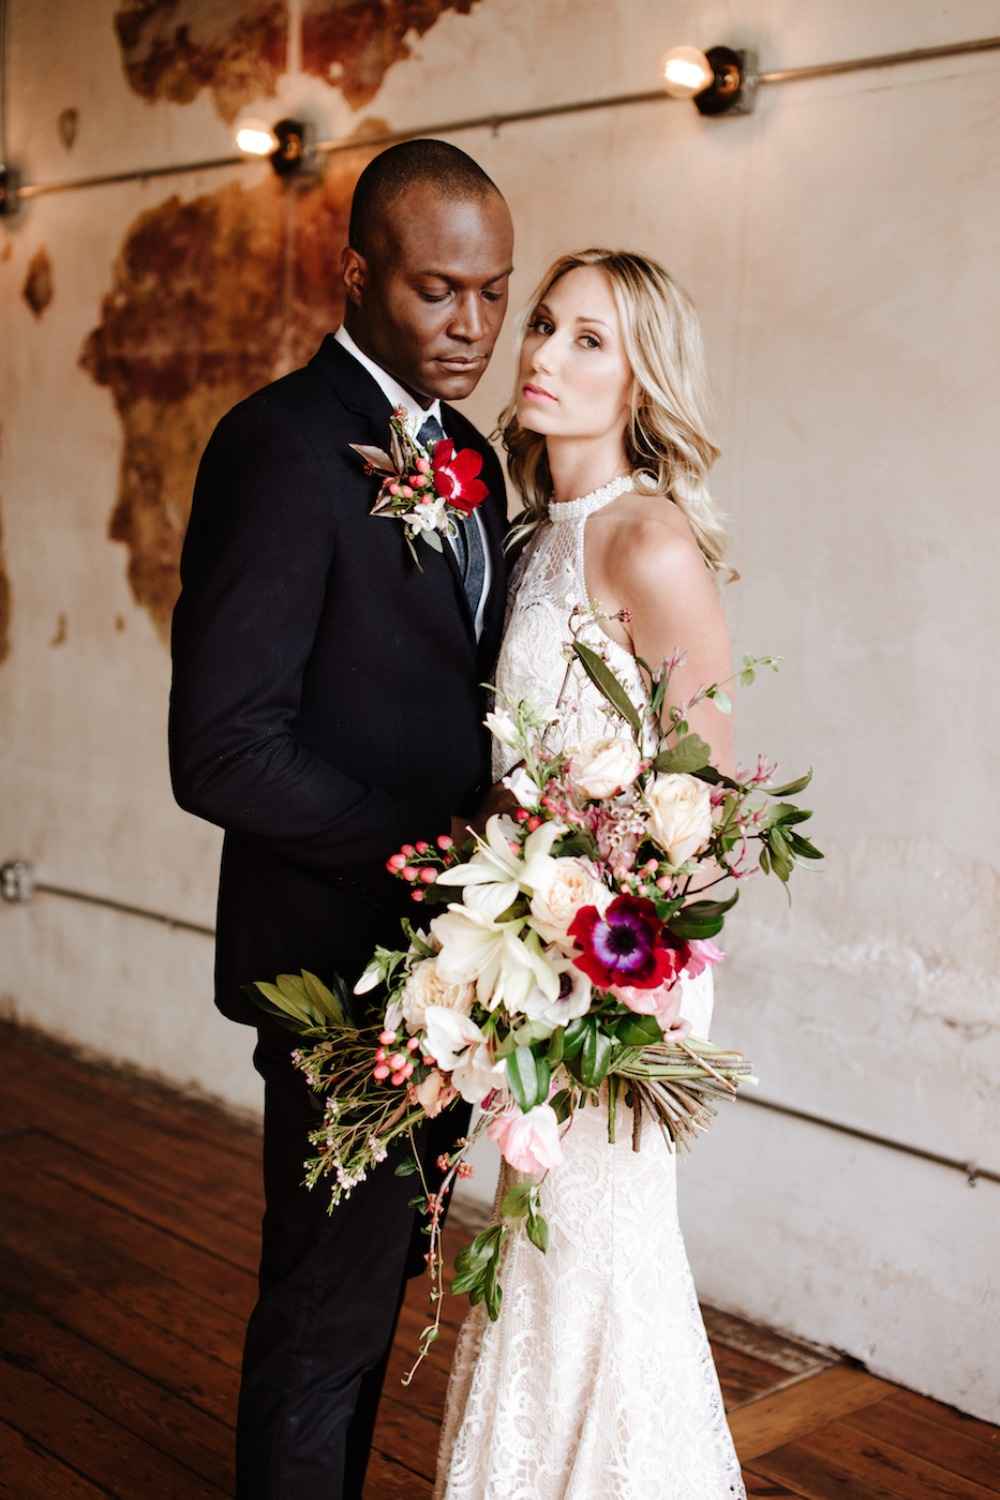 Industrial rustic wedding inspiration